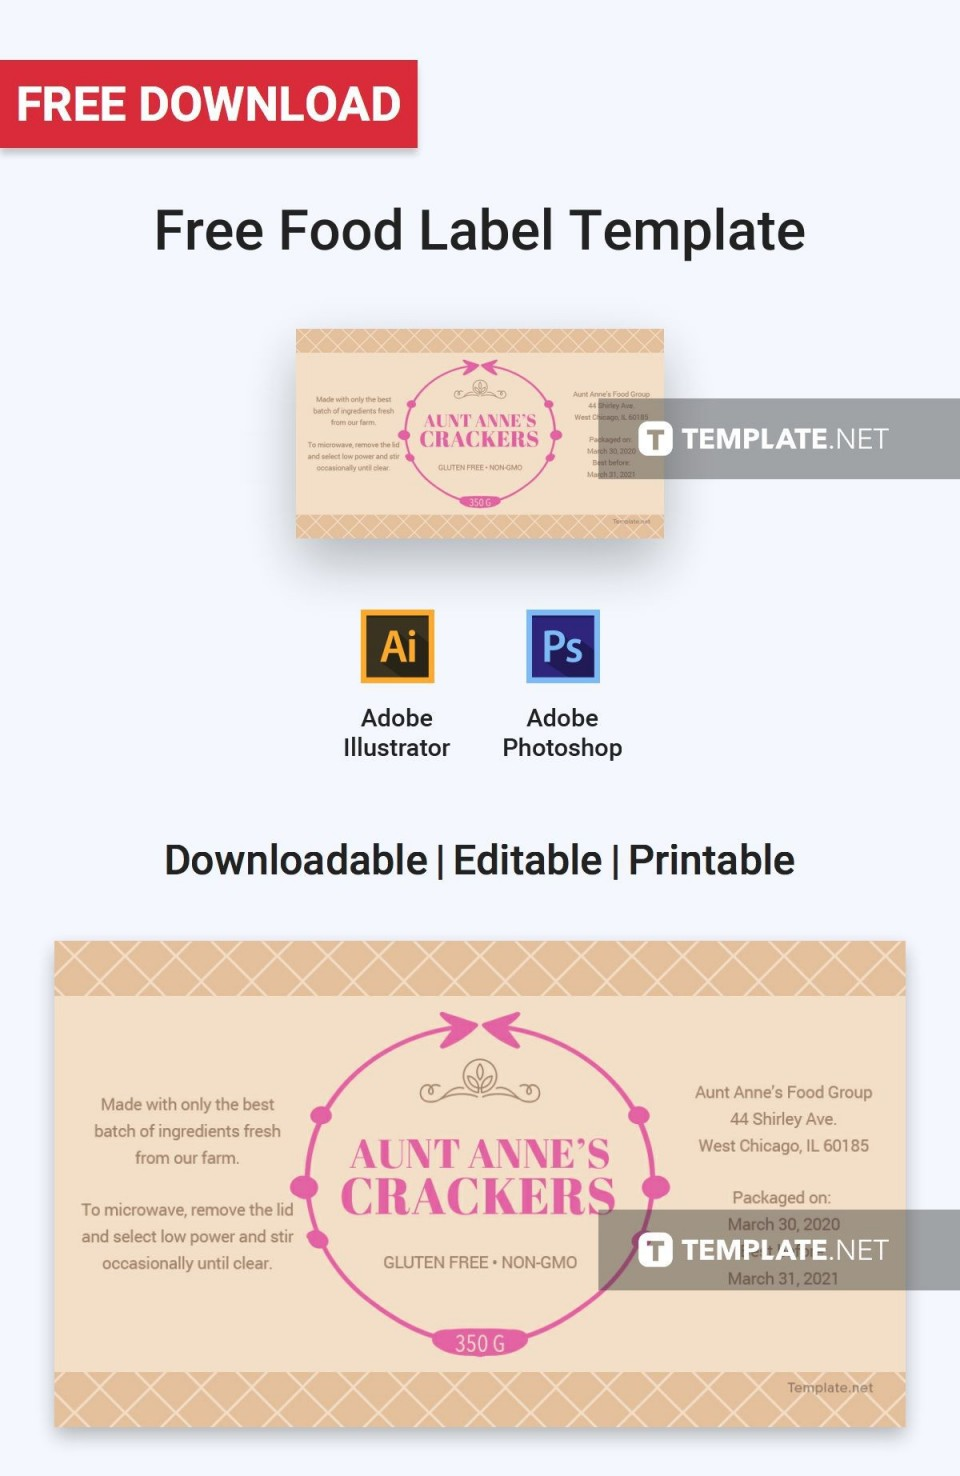 006 Phenomenal Microsoft Word Label Template Free Download High Definition 960